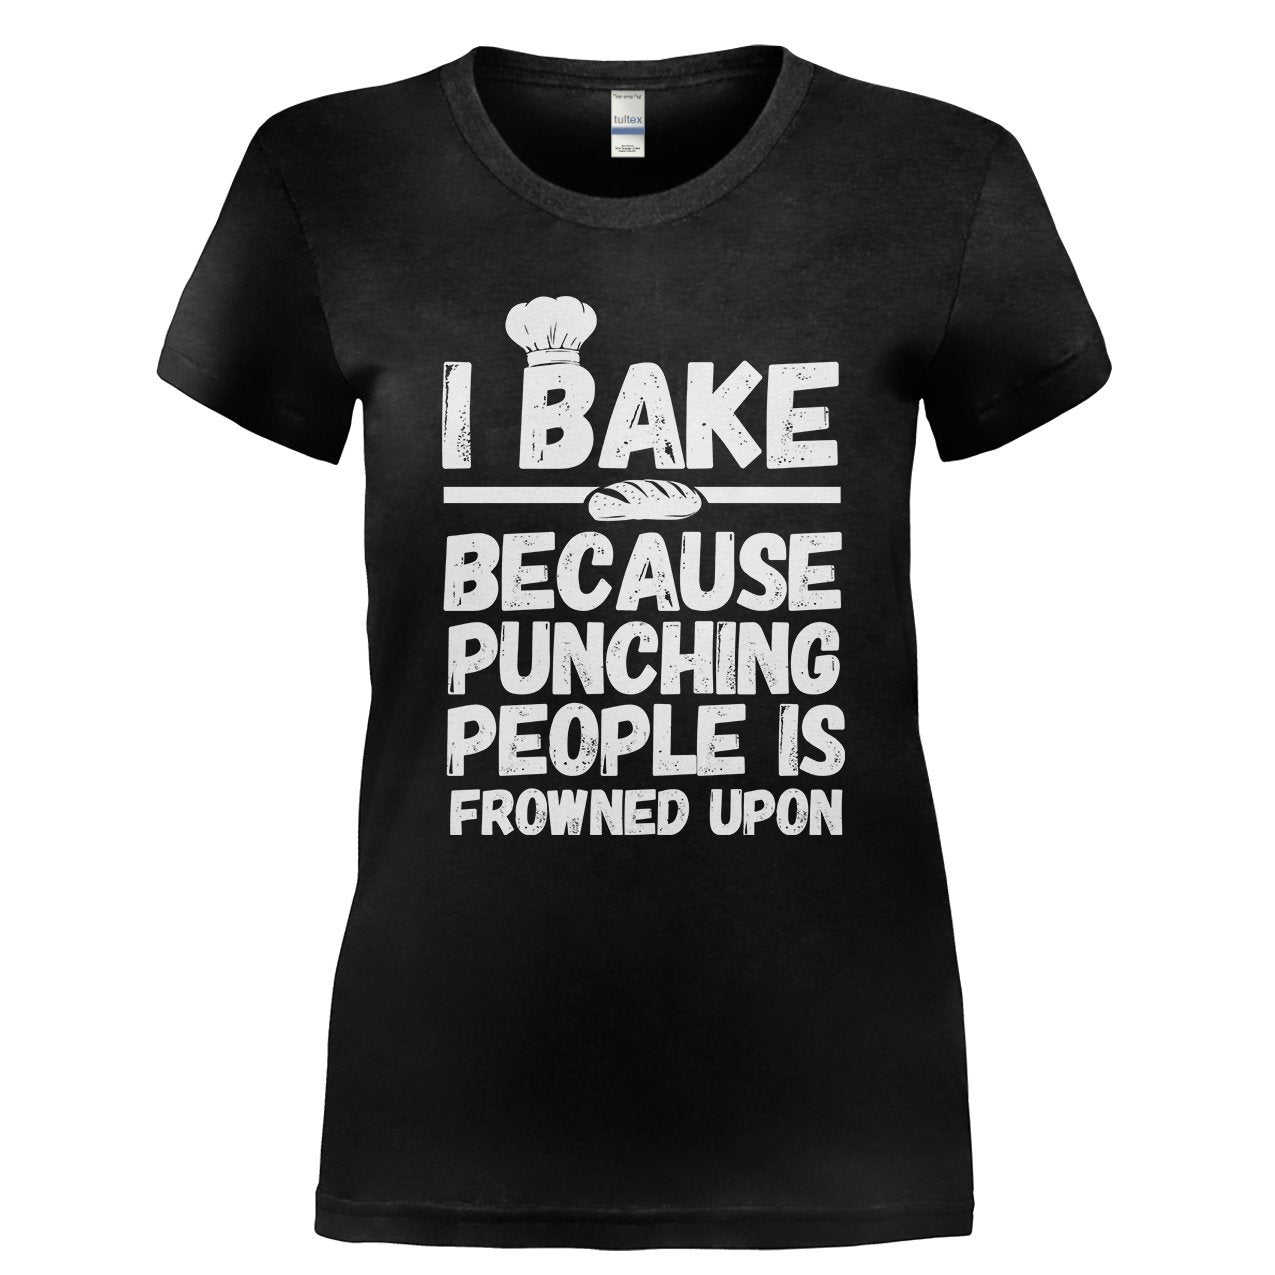 b5c24c738 I Bake Because Punching People Is Frowned Upon T-Shirts & Hoodies ...